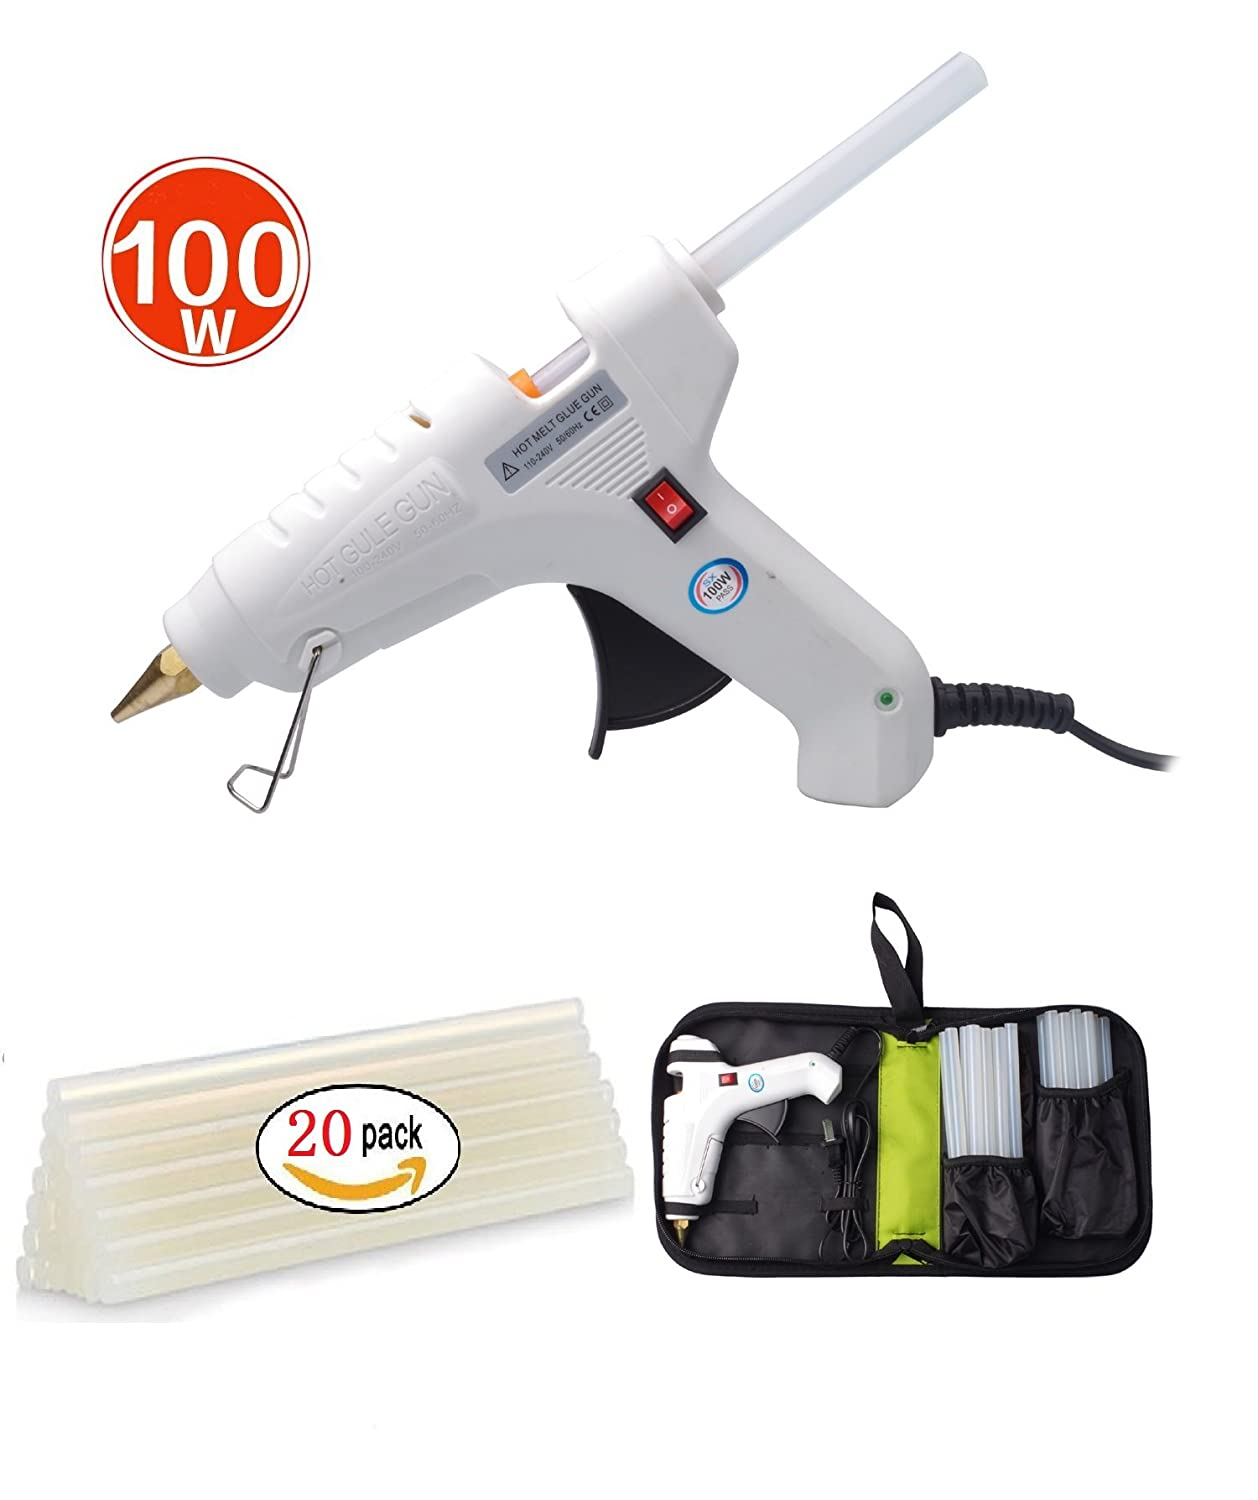 Efaithtek 100 Watt Hot glue Gun with 20PCS Melt Glue Sticks and carry bag for Arts & DIY Crafts, & Sealing and Quick Repairs in Home & Office (White)